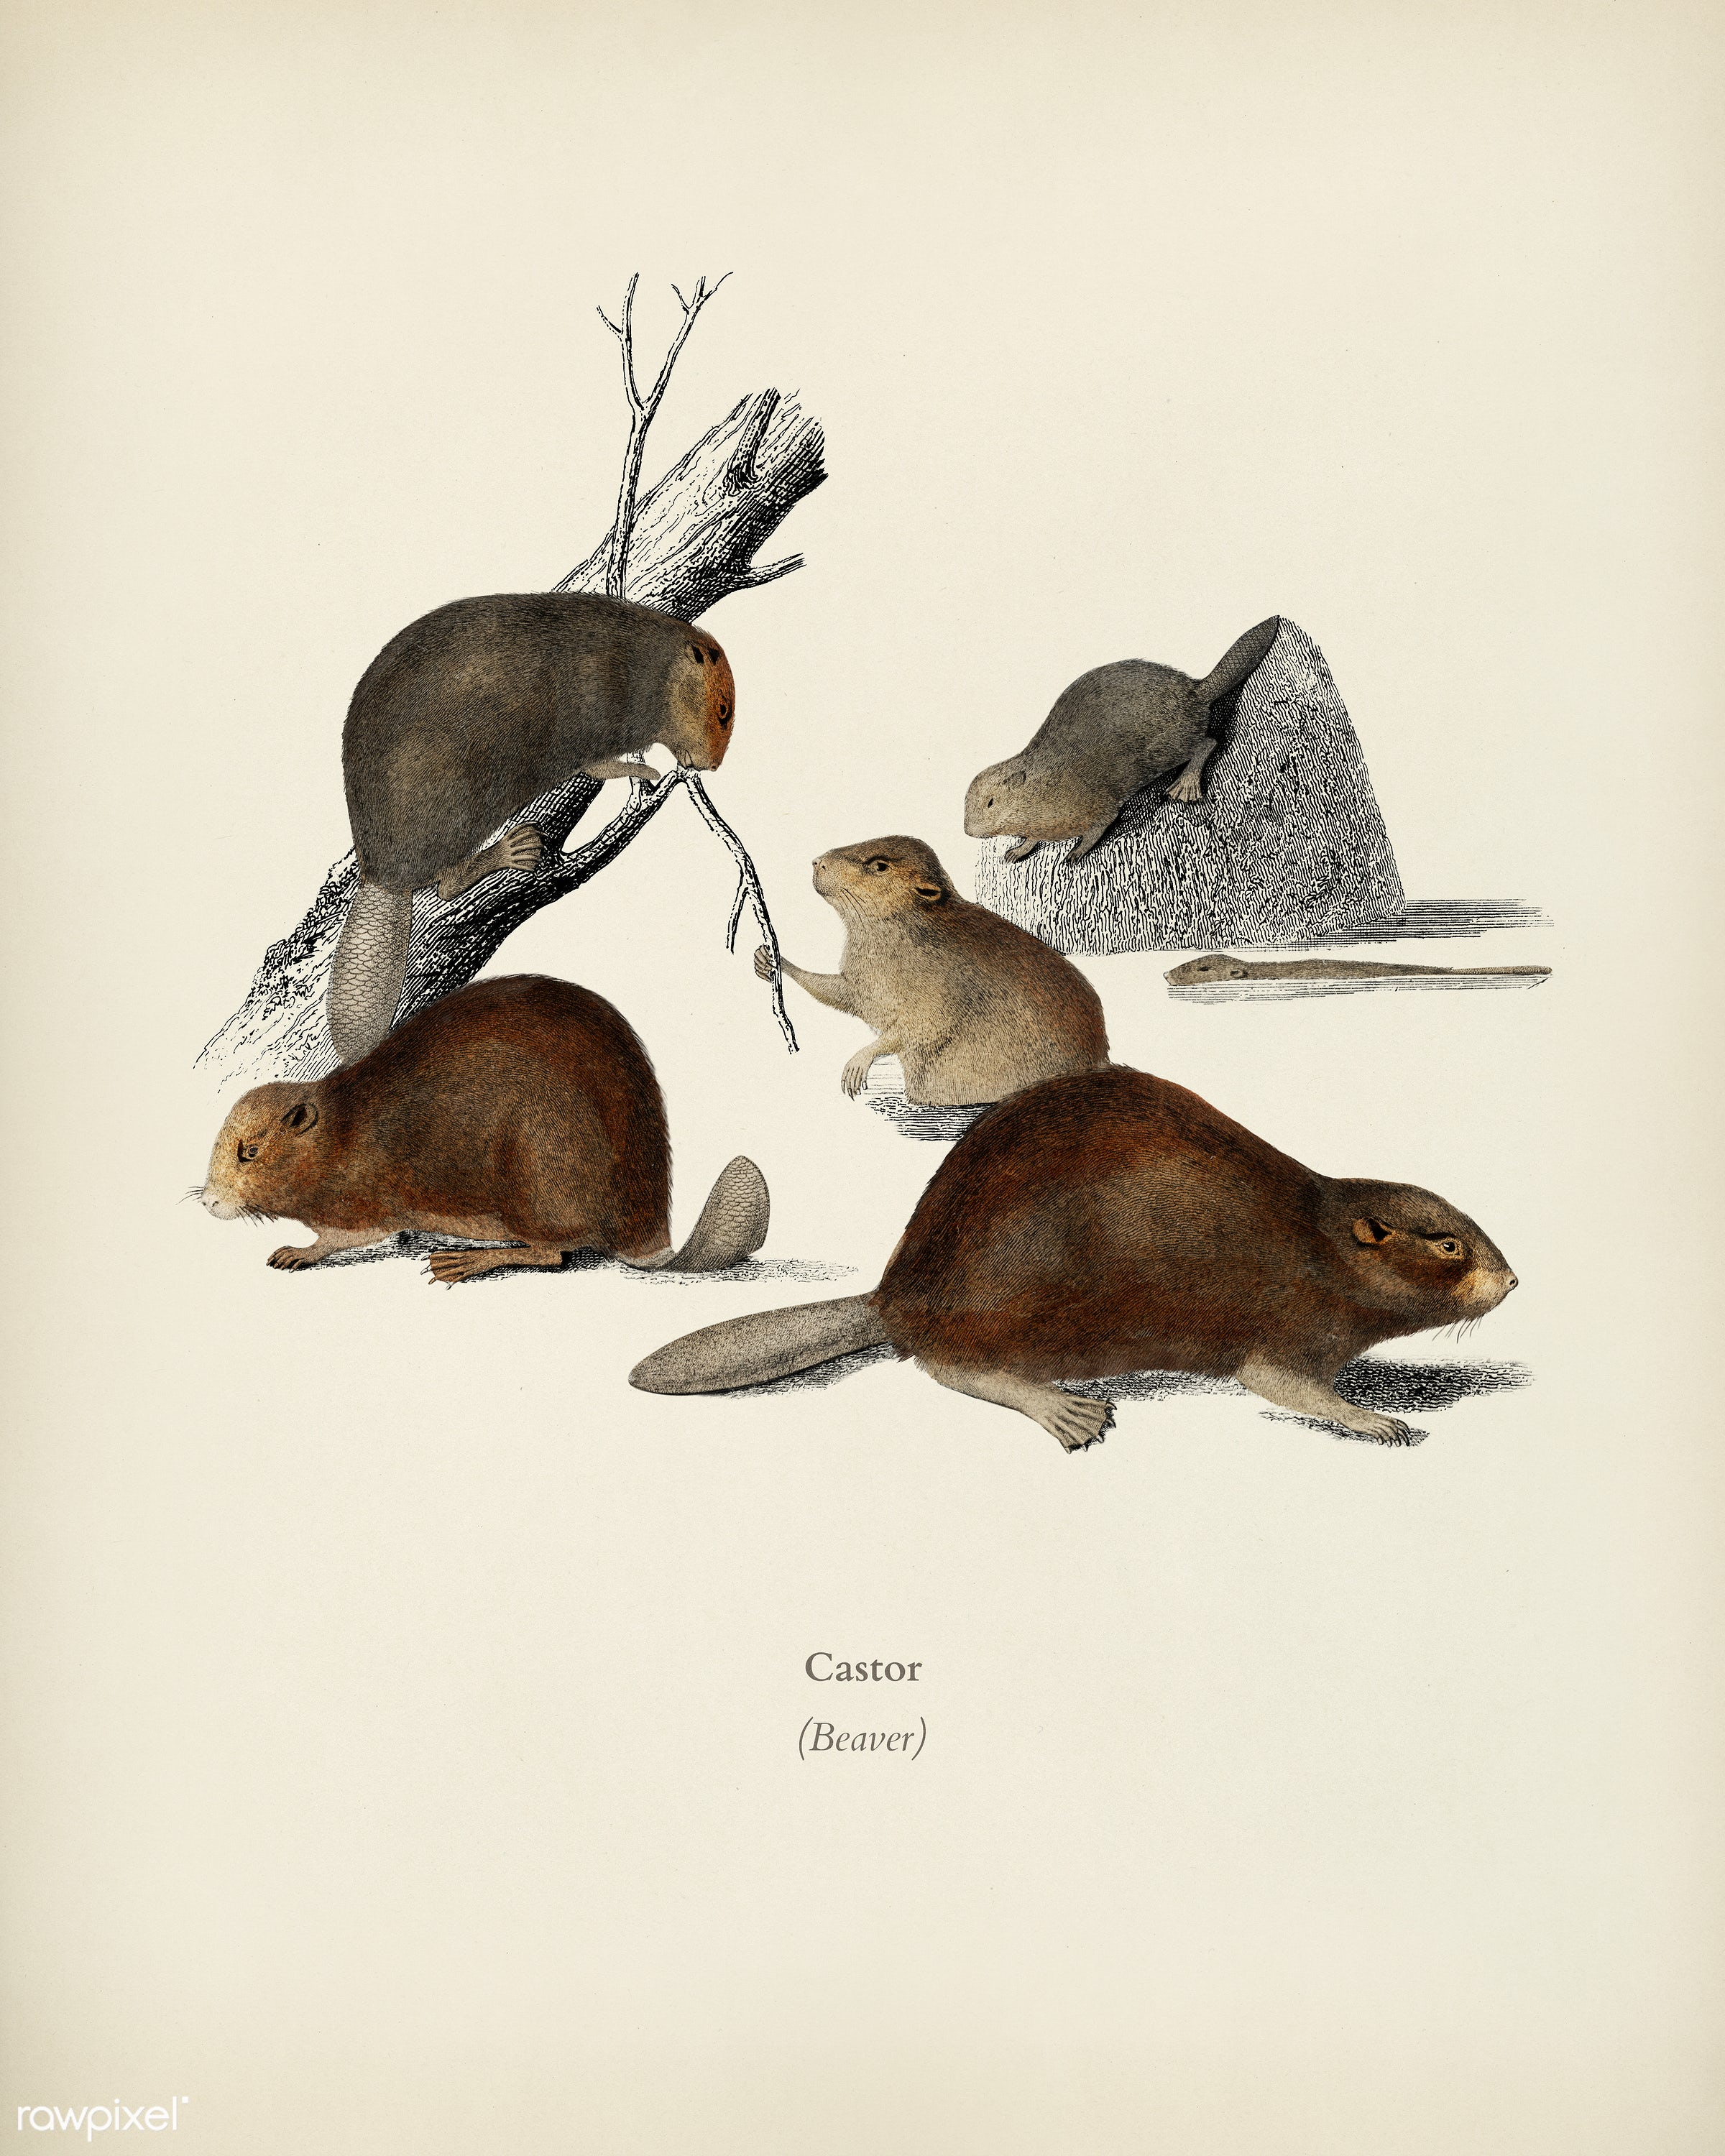 Beaver (Castor) illustrated by Charles Dessalines D' Orbigny (1806-1876). Digitally enhanced from our own 1892 edition...